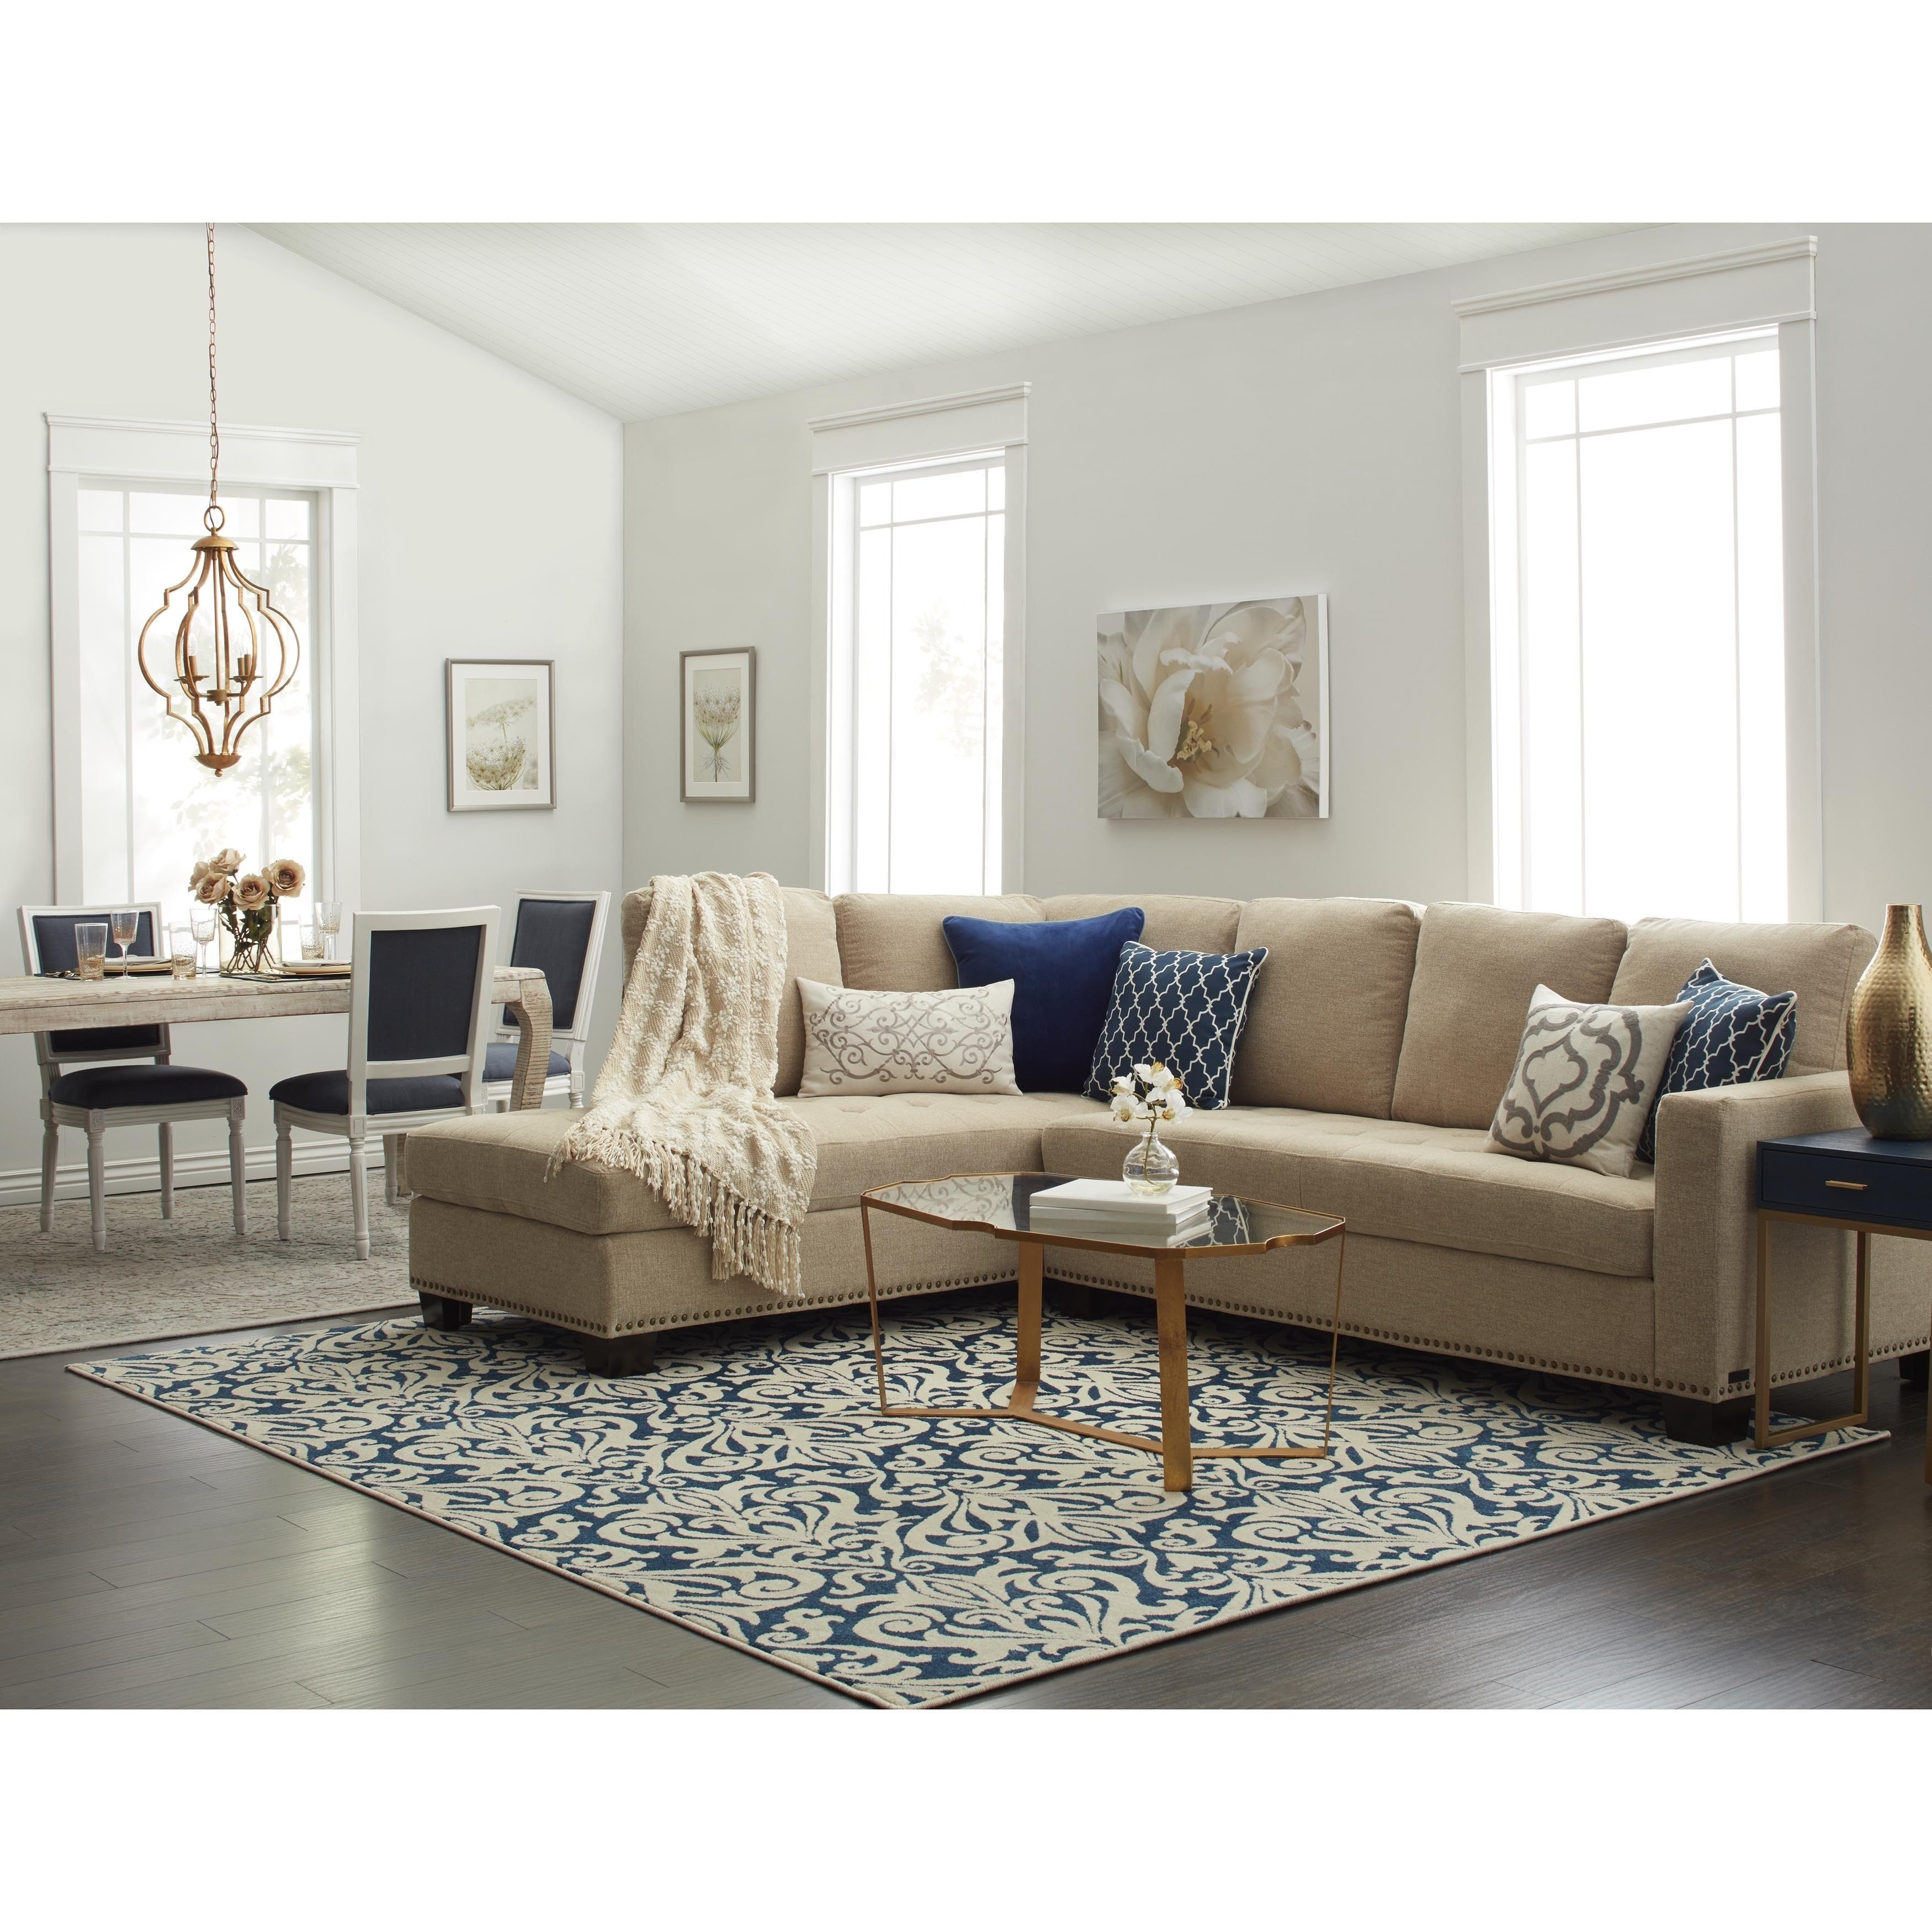 Delightful Featured Image Of Overstock Sectional Sofas